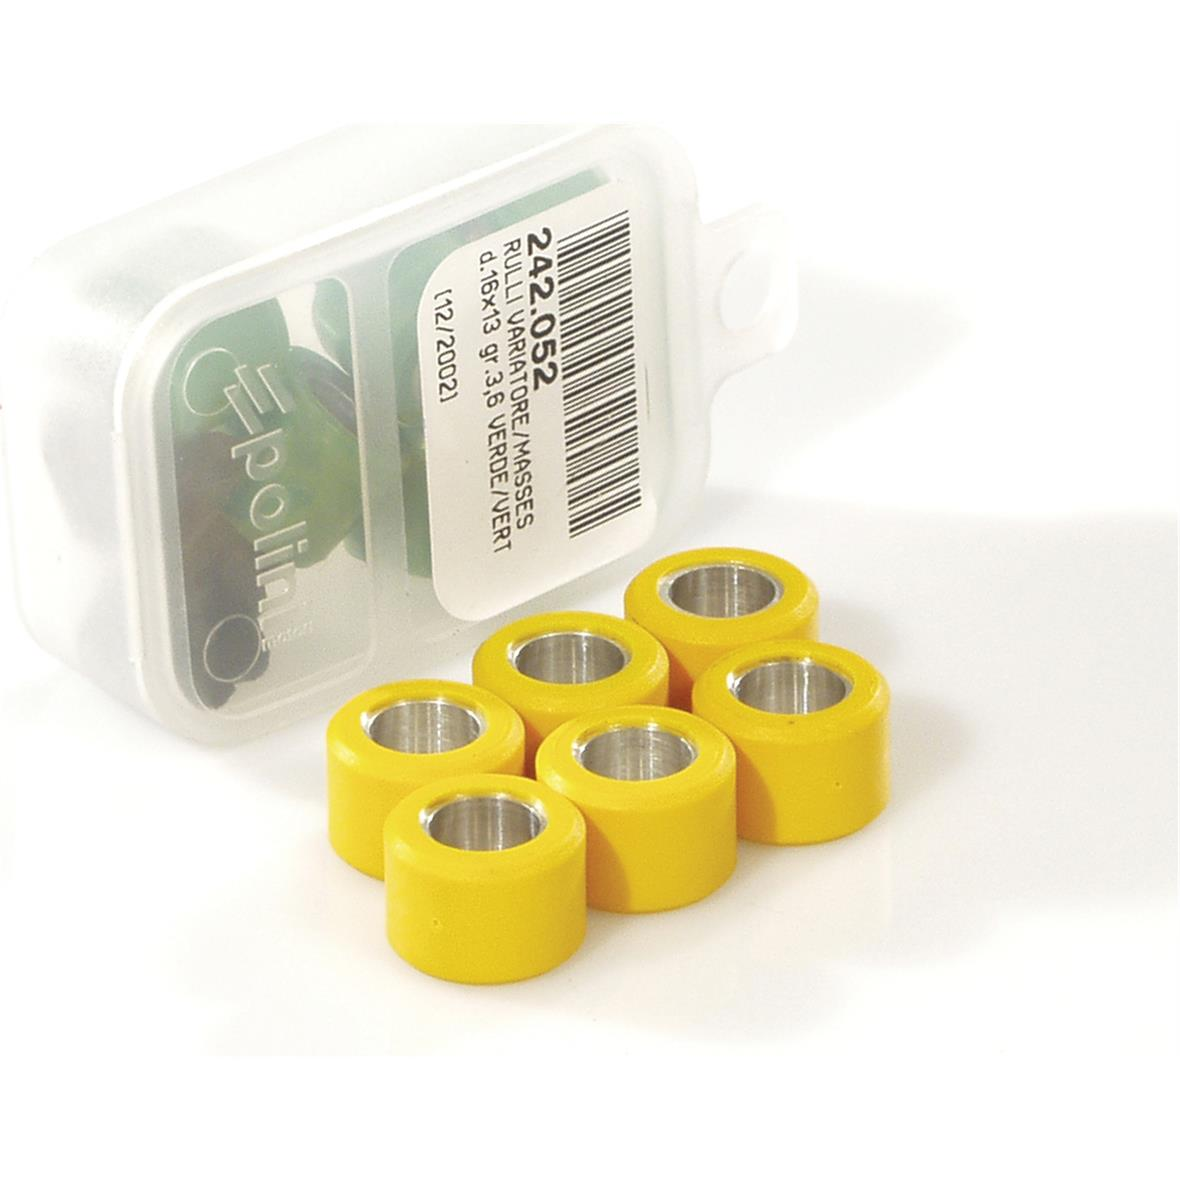 Product Image for 'Variator Rollers POLINI 15x12 mm 3,3gTitle'